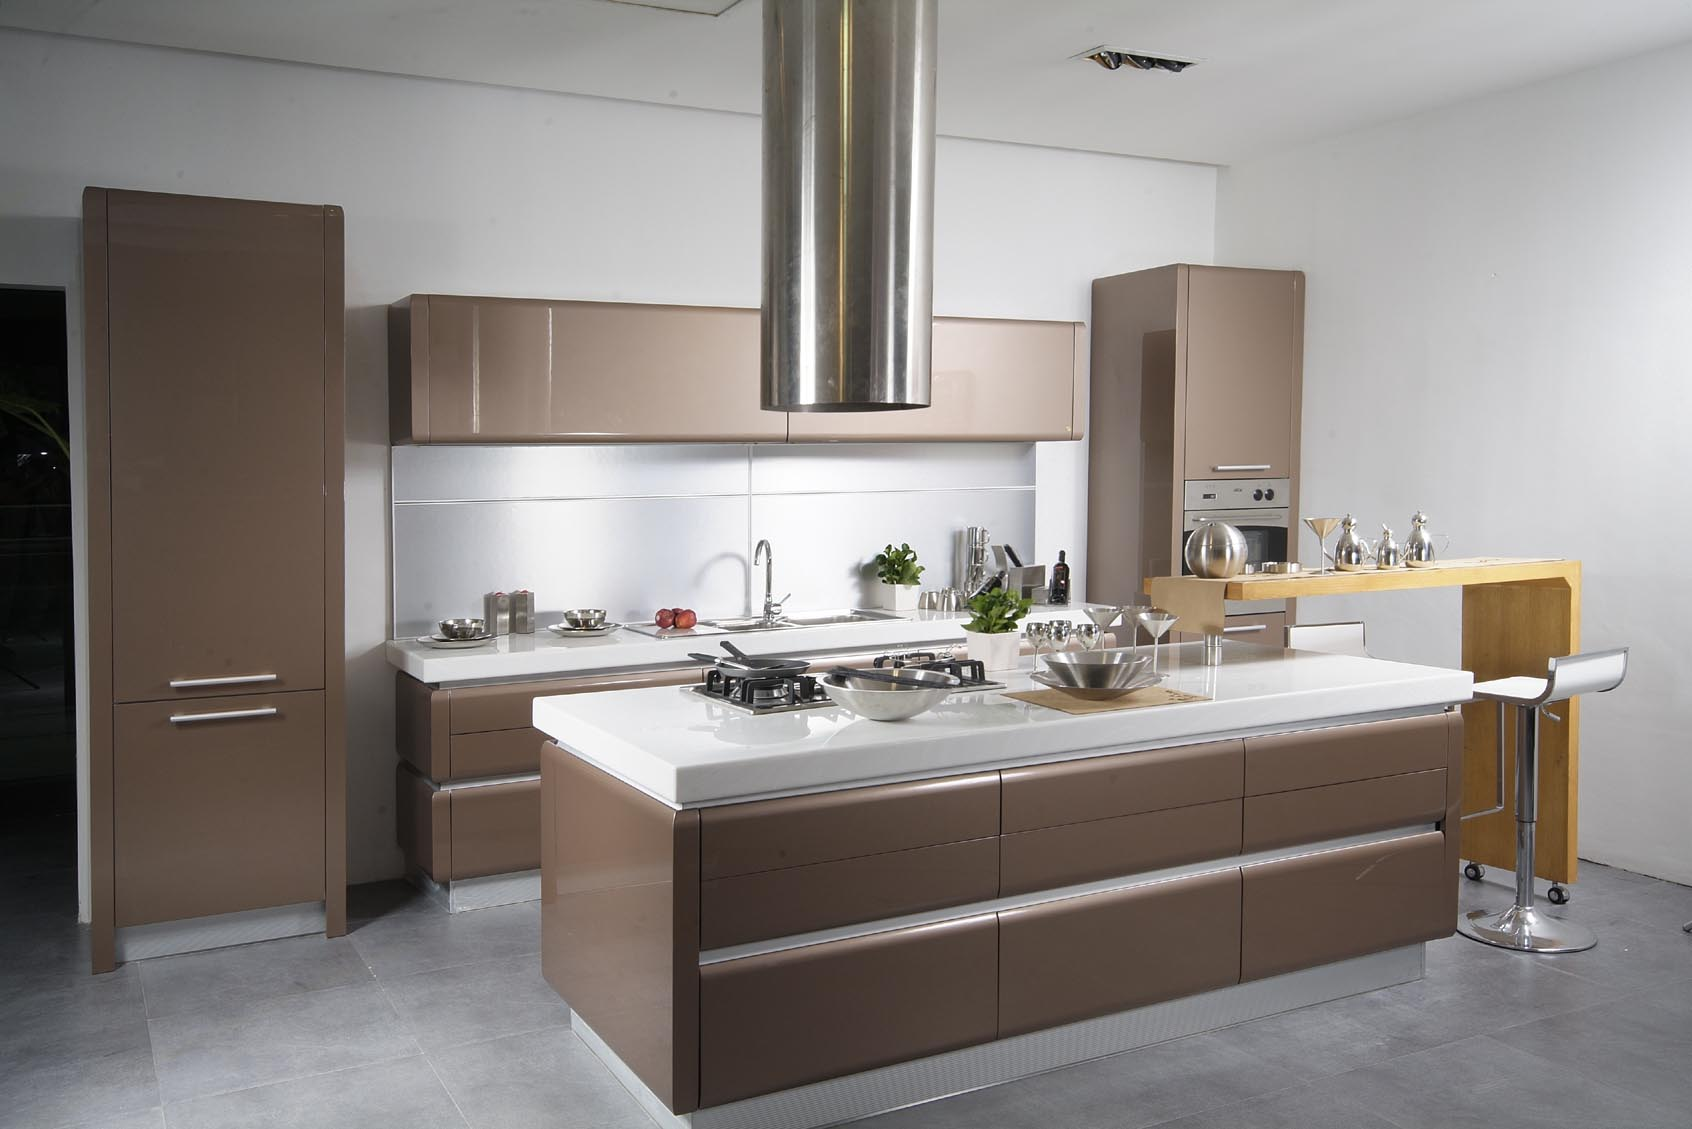 Kitchen. Kitchen - Systym.co